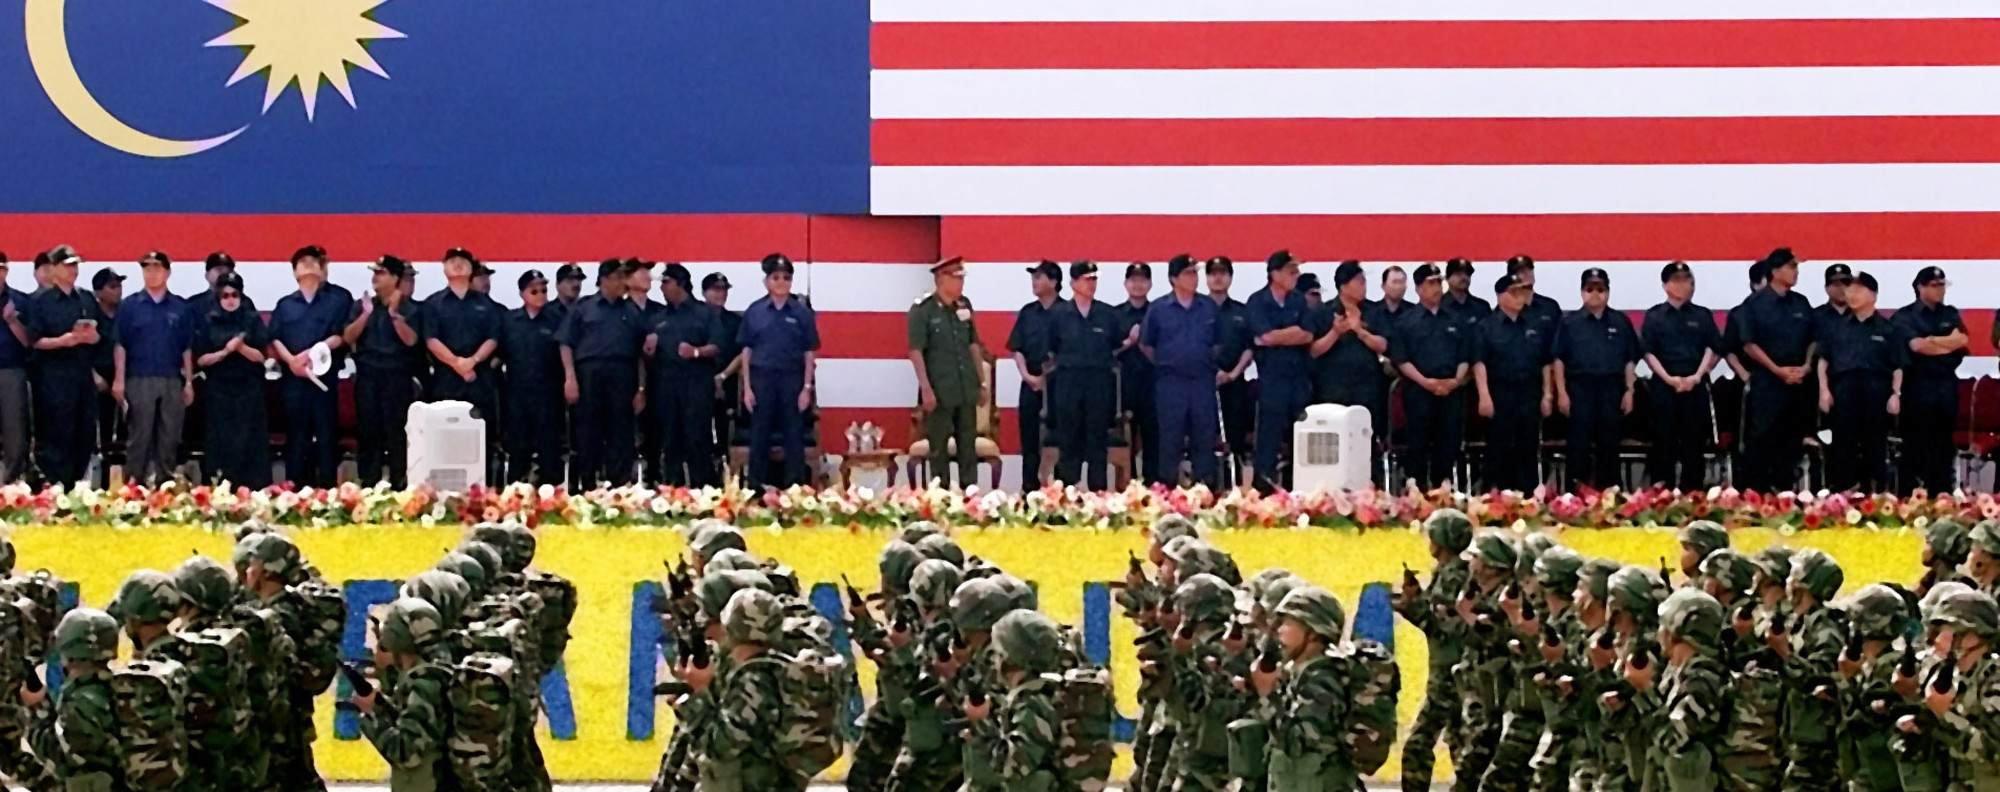 The Malaysian military on parade in Kuala Lumpur's Independence Square. Photo: AP